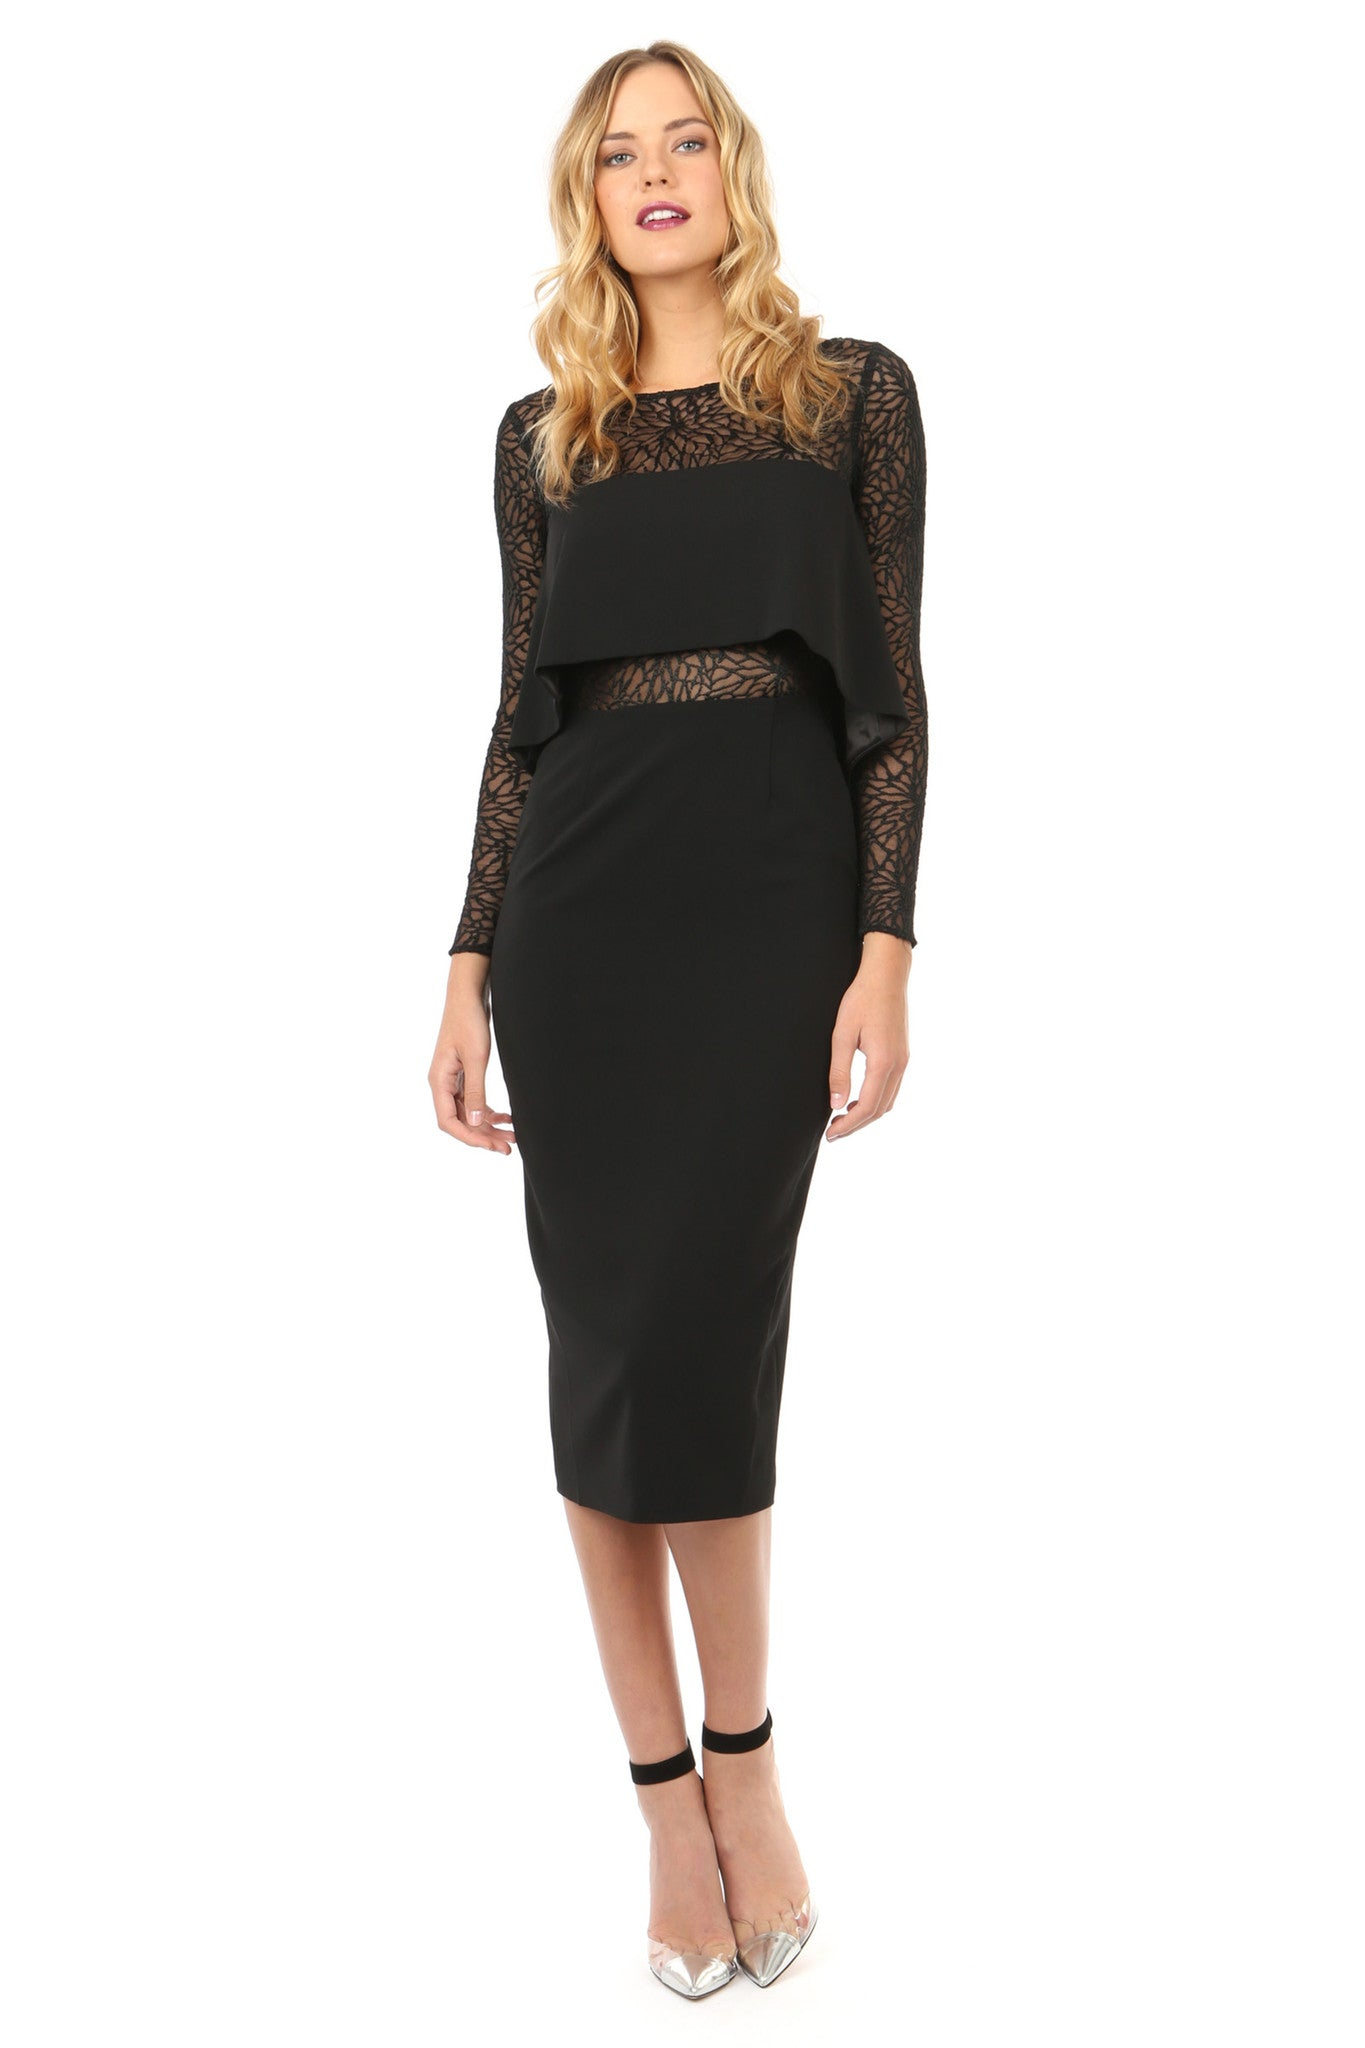 Jay Godfrey Black Panel Long-Sleeve Dress - Front View